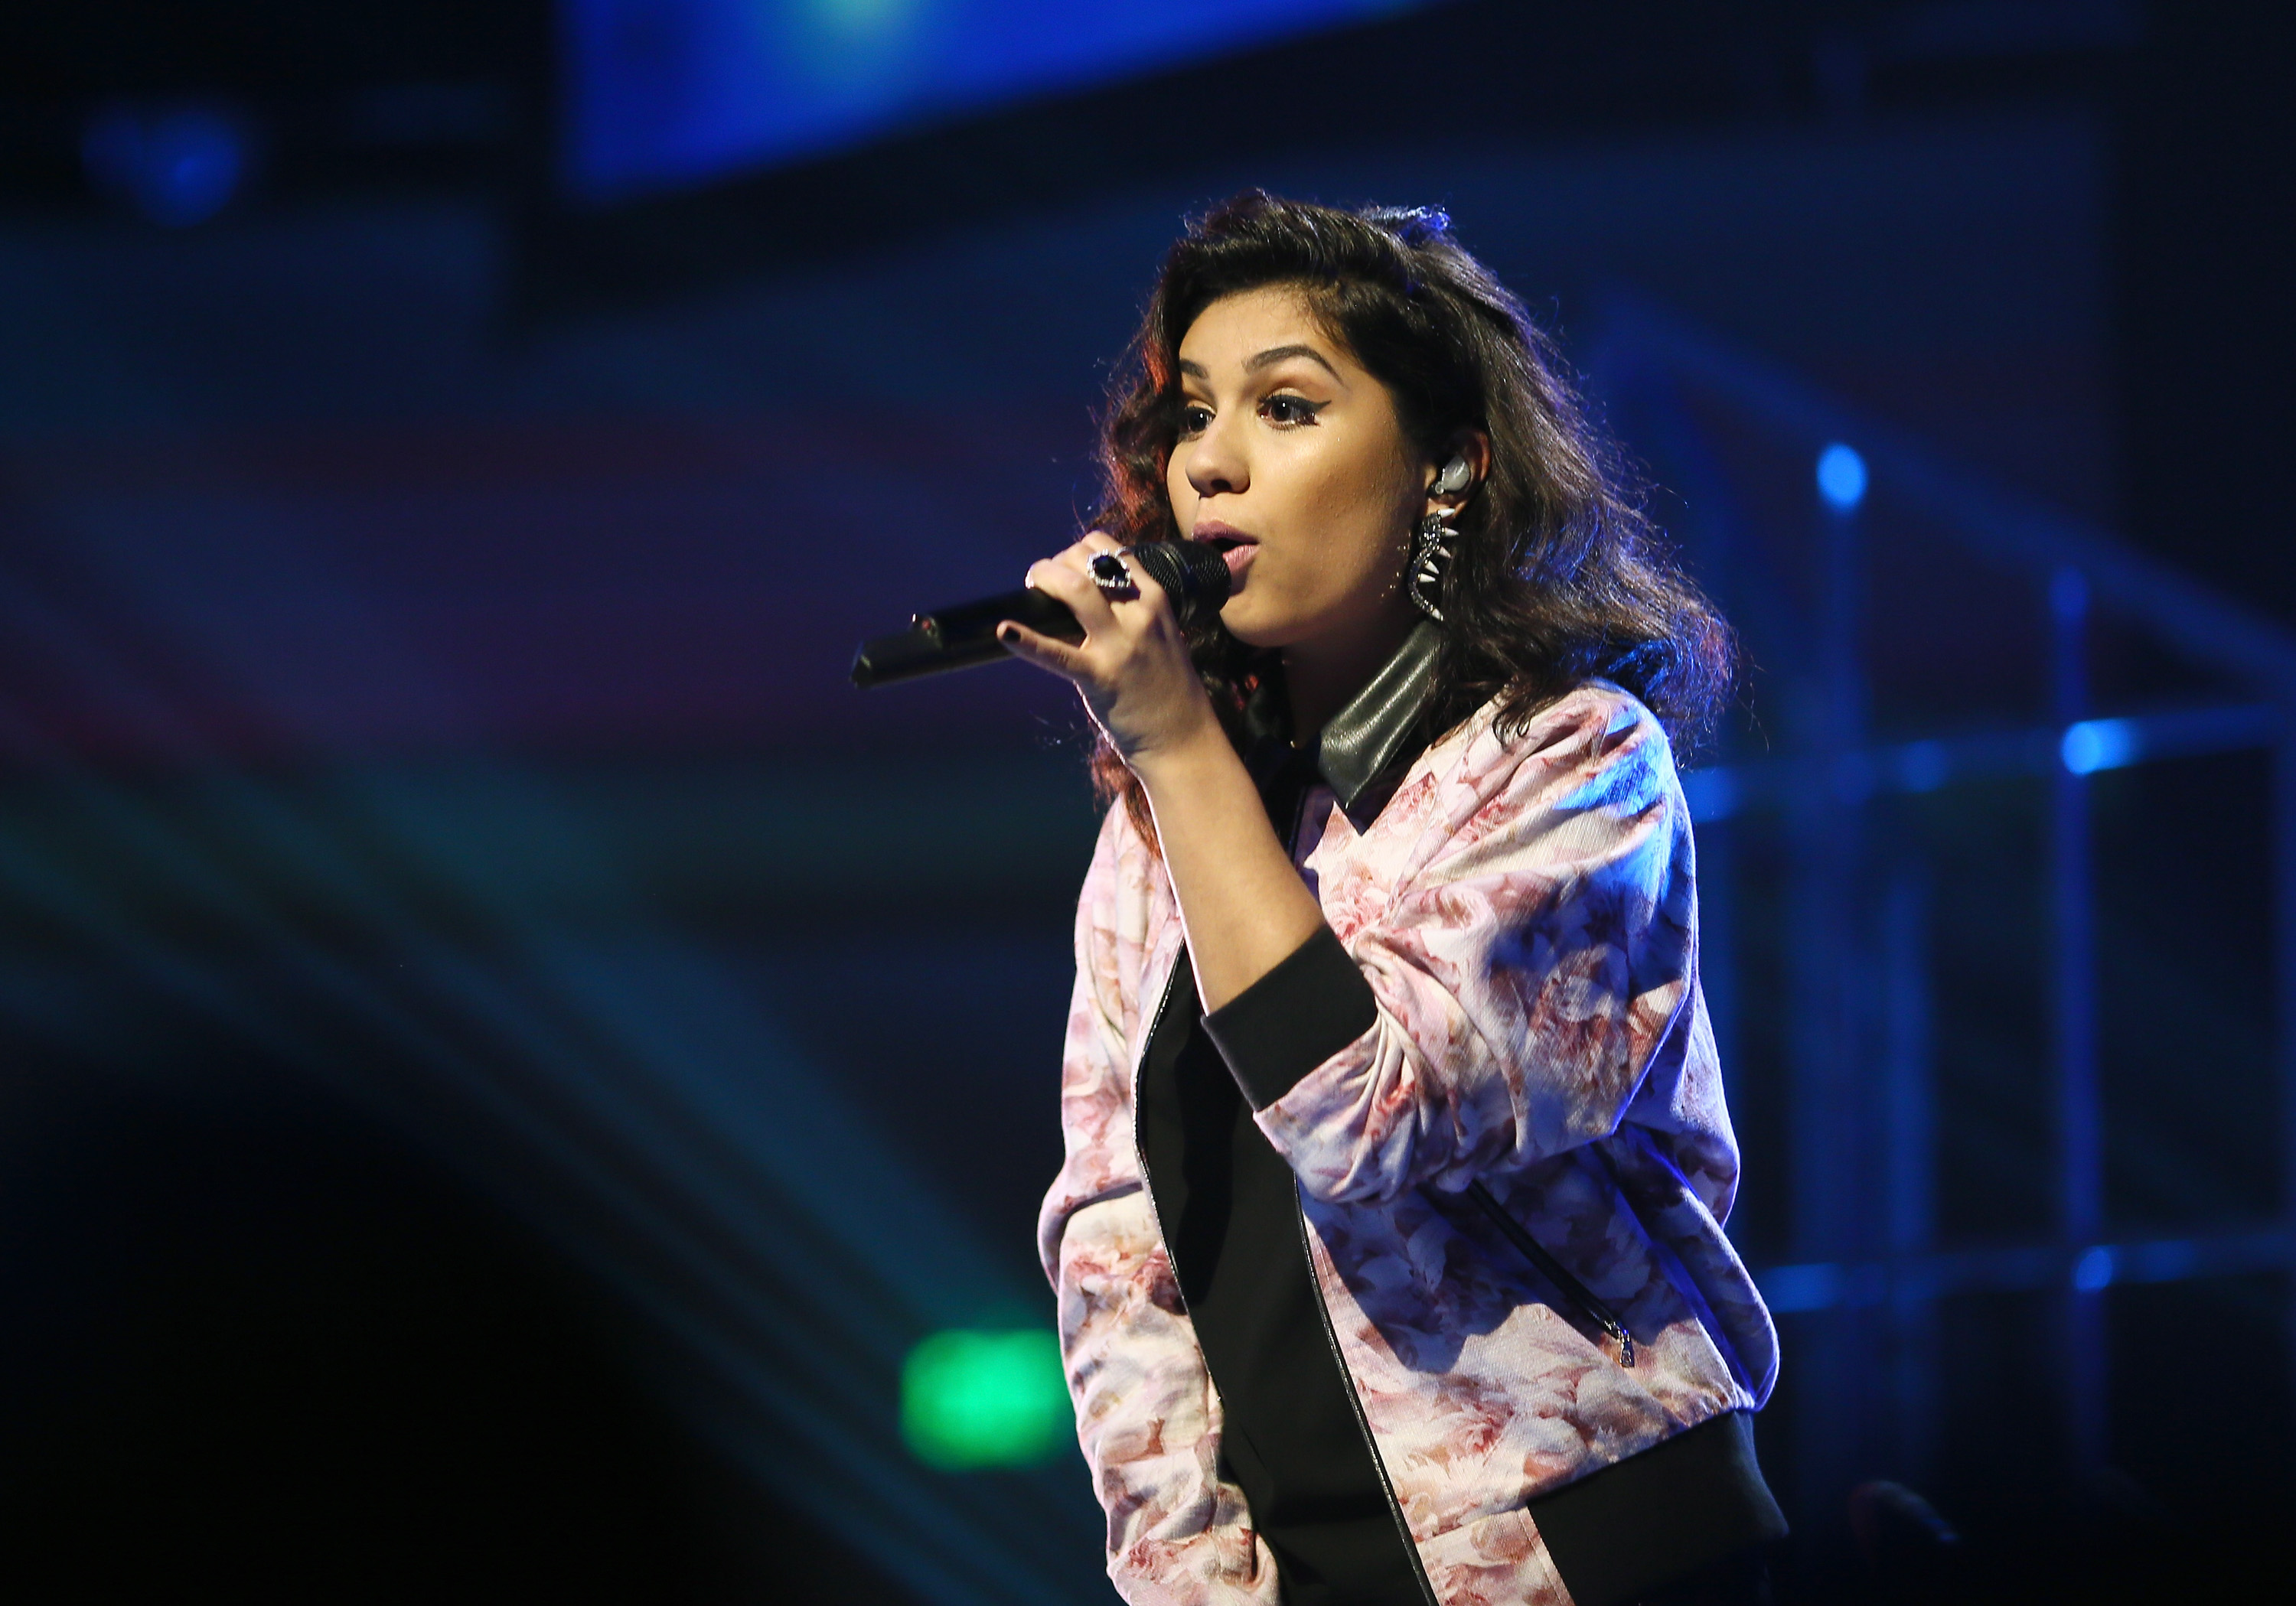 LOS ANGELES, CA - SEPTEMBER 17: Recording artist Alessia Cara performs onstage VH1's 5th Annual Streamy Awards at the Hollywood Palladium on Thursday, September 17, 2015 in Los Angeles, California. (Photo by Mark Davis/Getty Images for Dick Clark Productions)